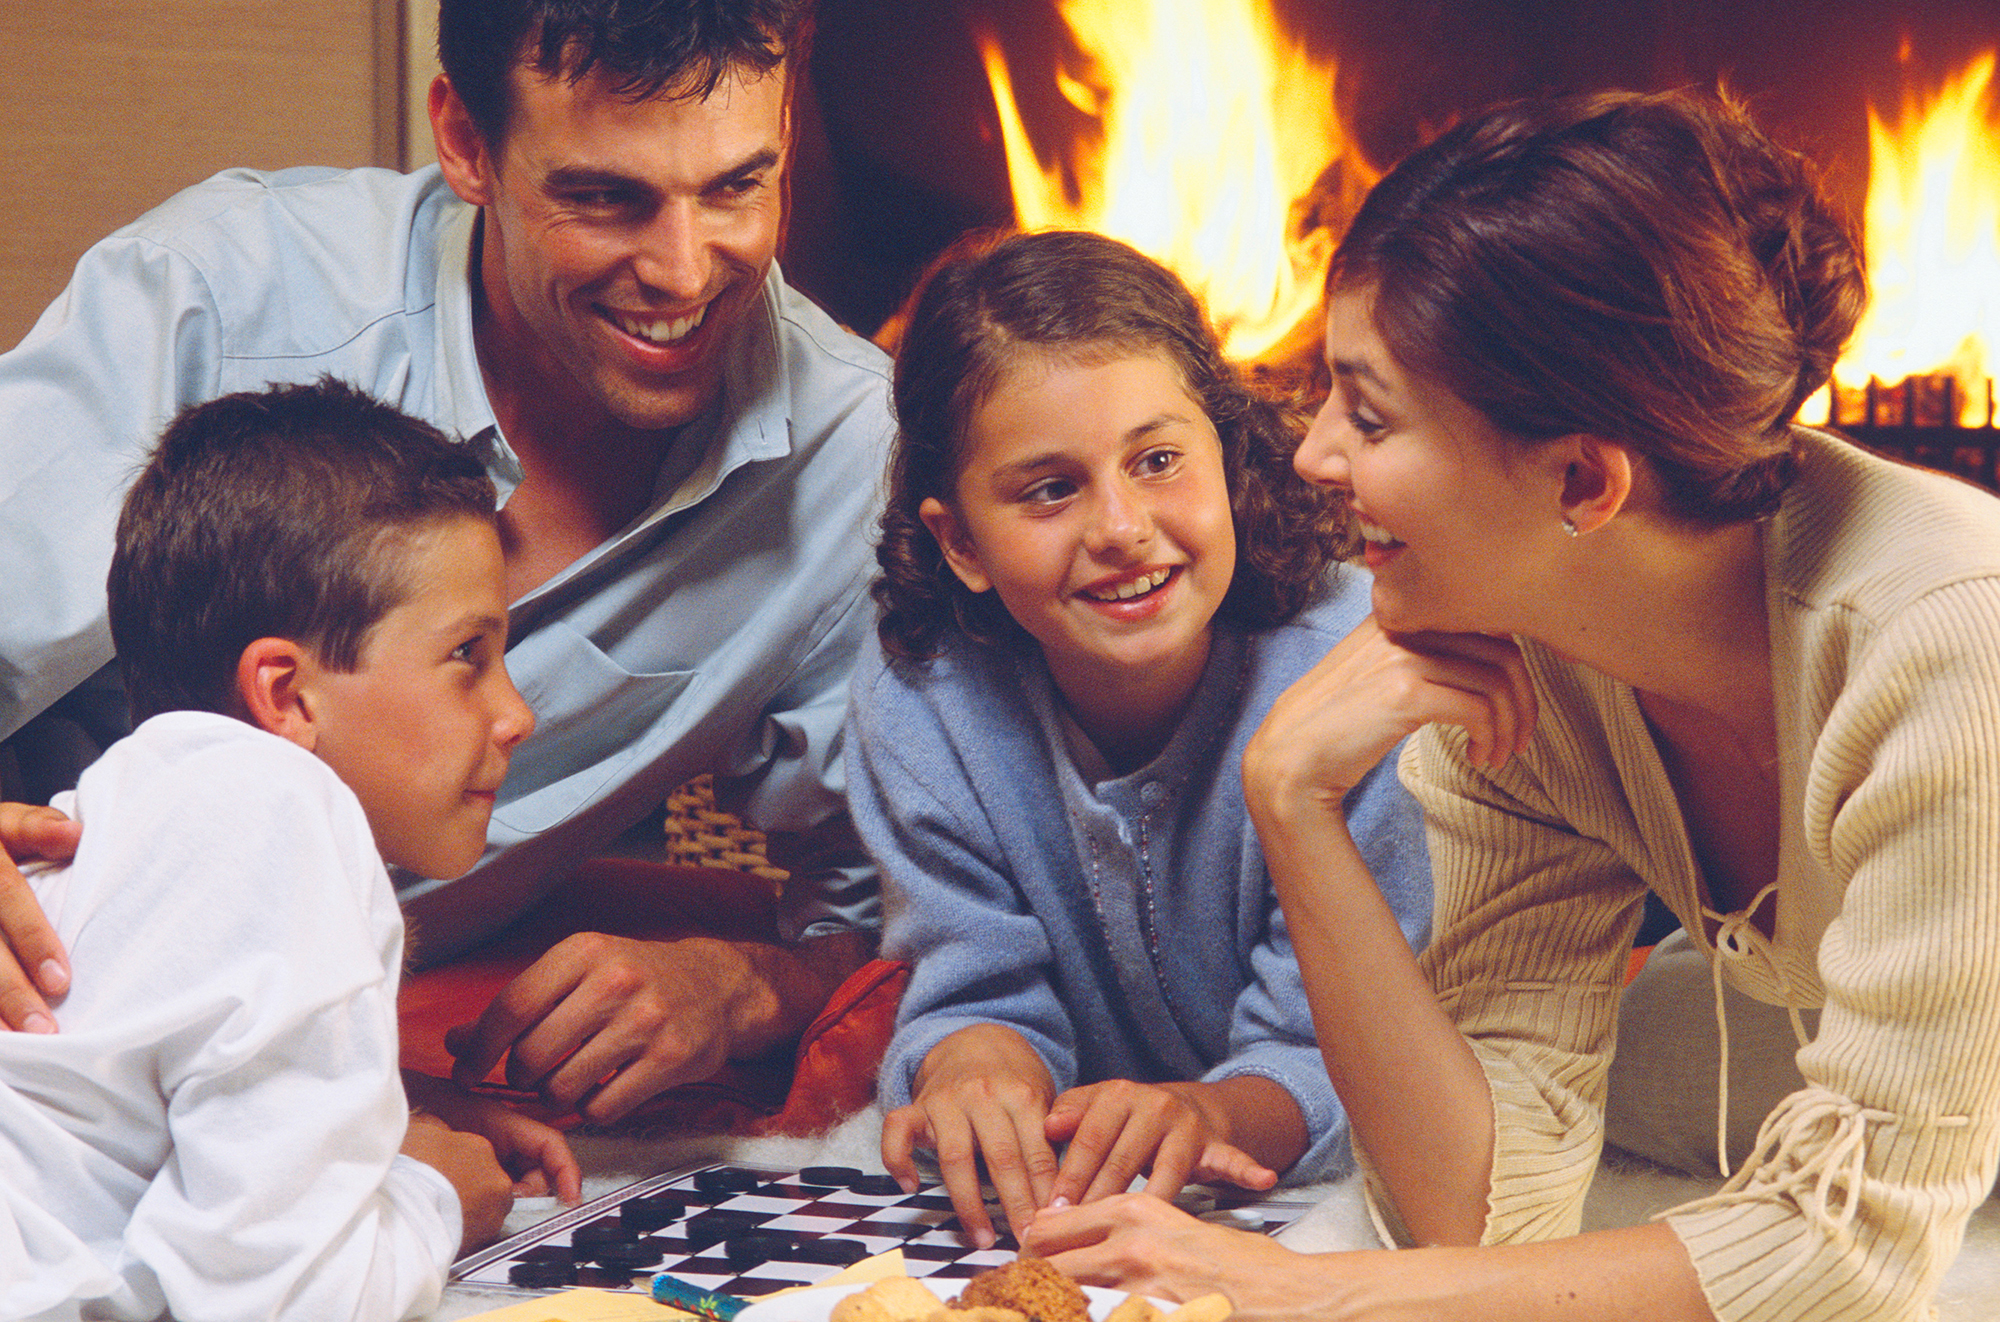 family_checkers_fire_2000px